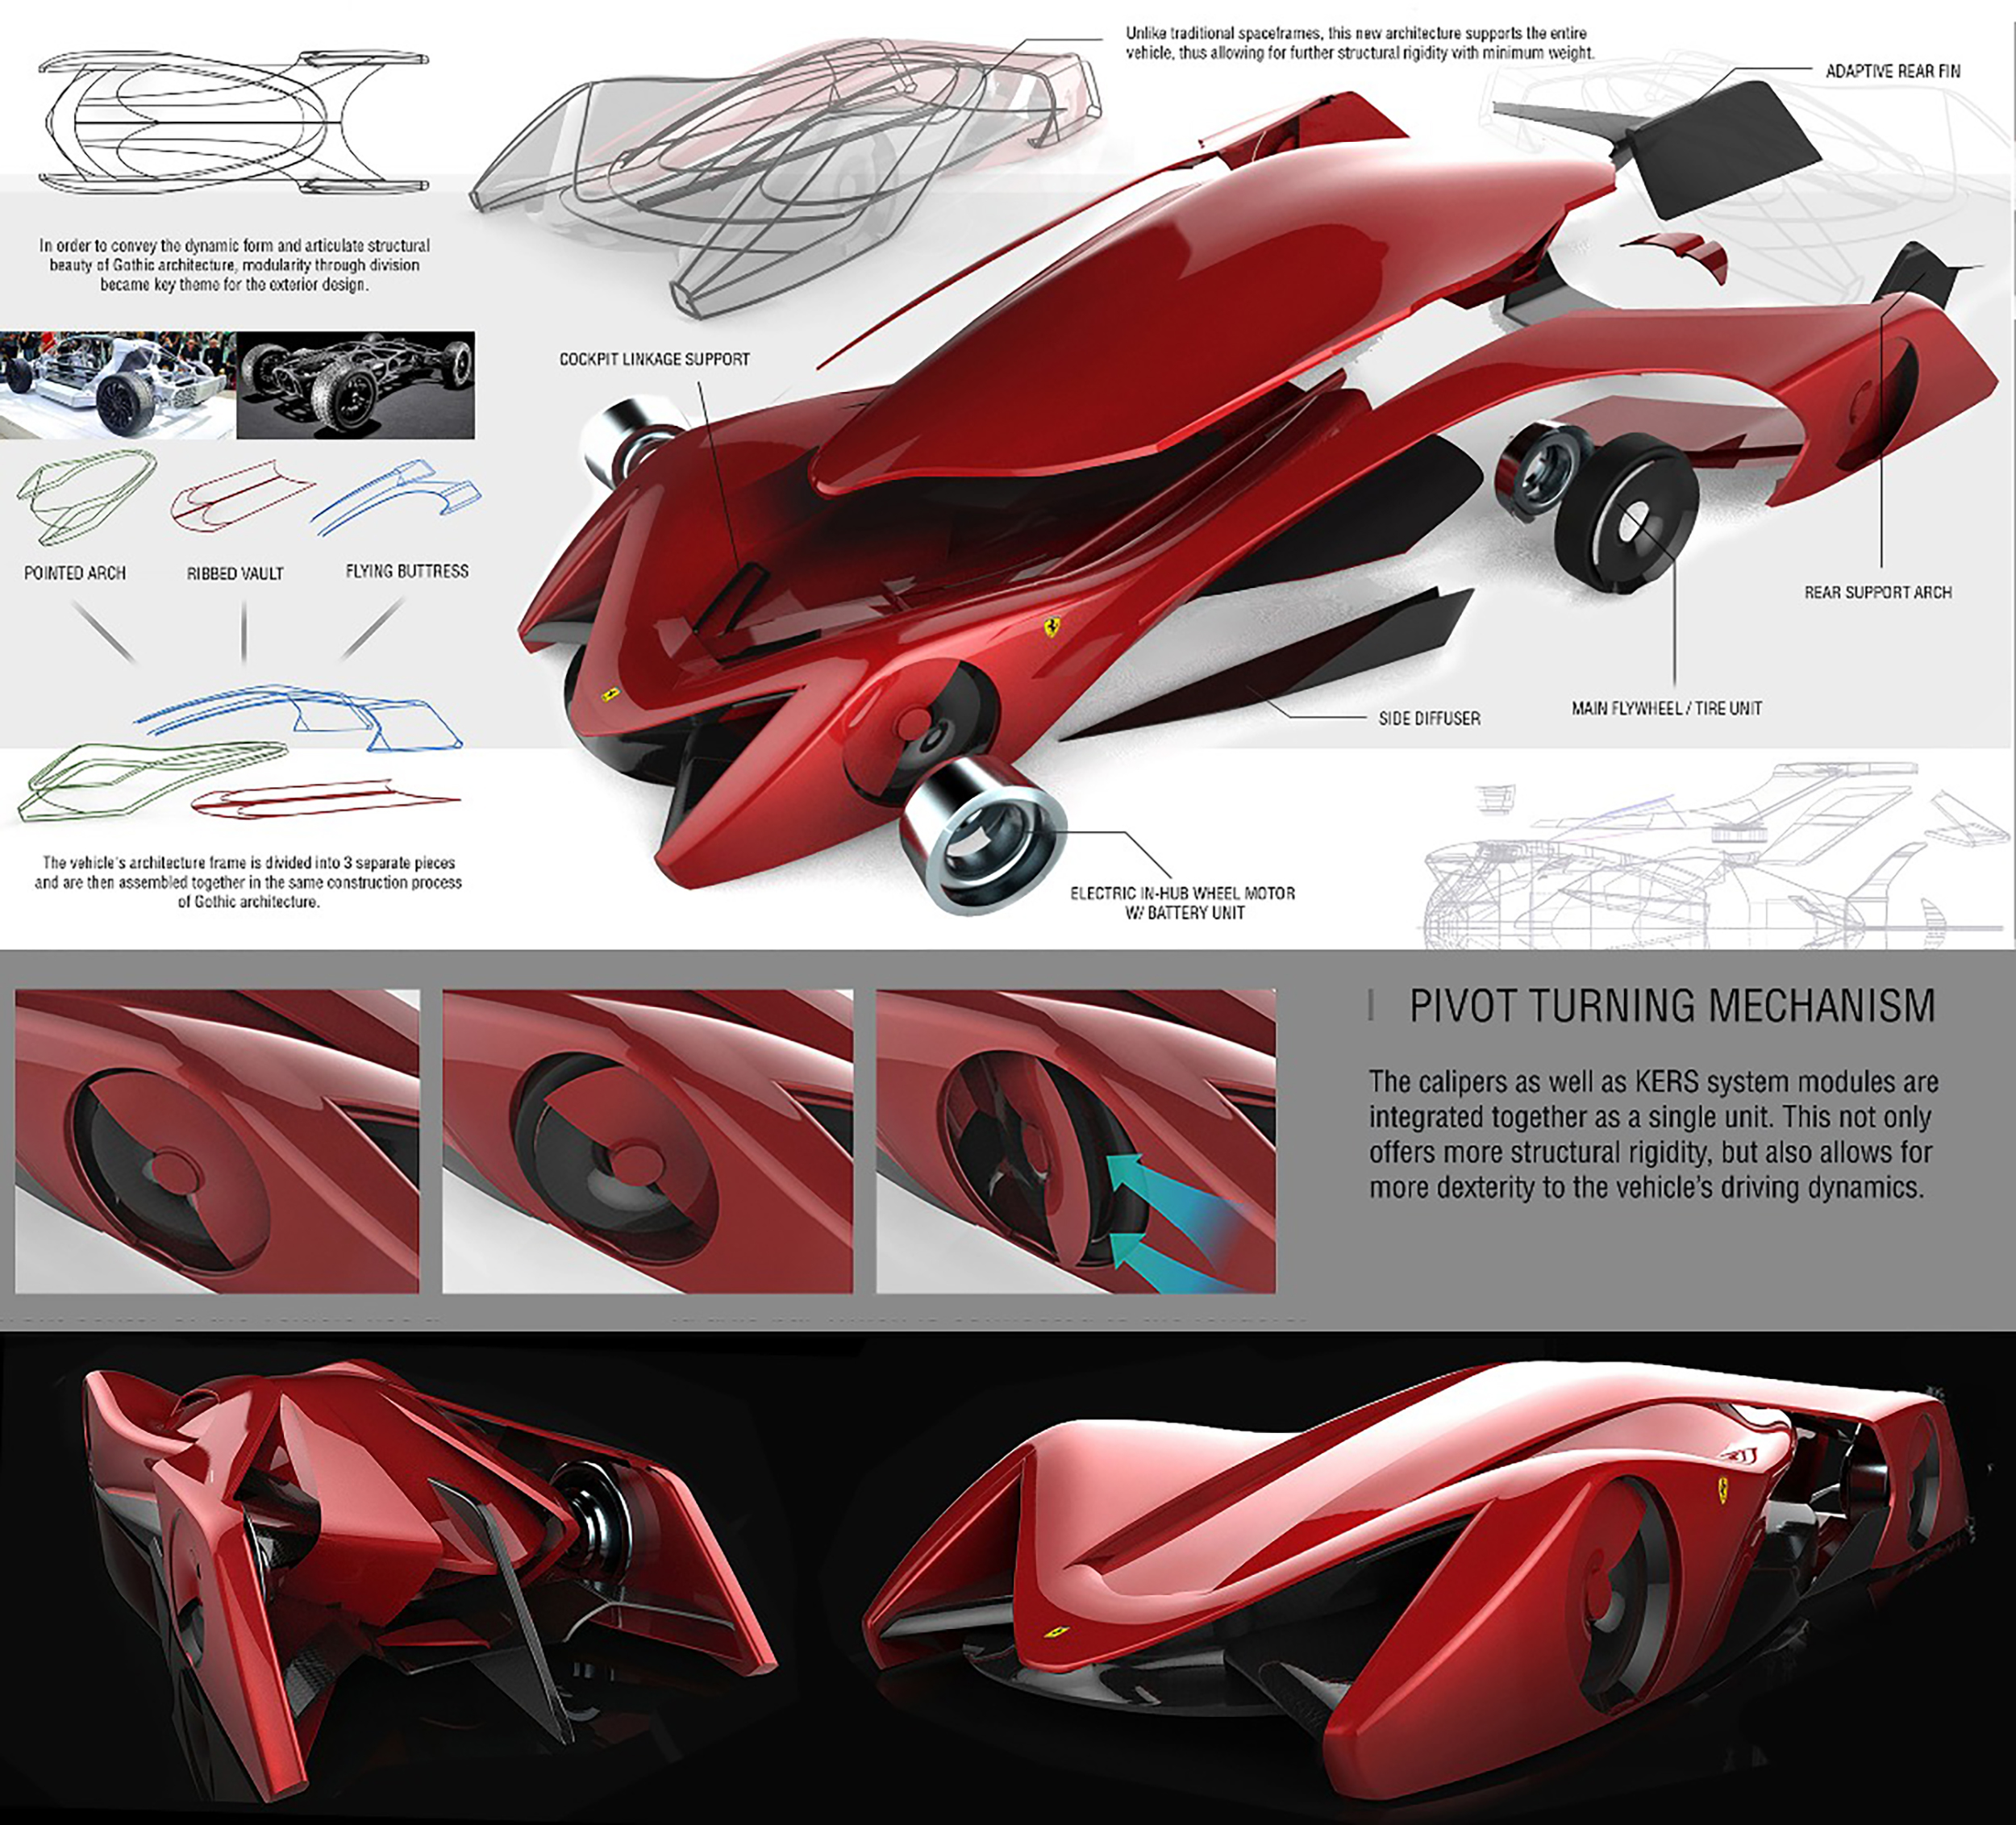 Ferrari Gothica Rossa 2025 Electric Hypercar Concept By